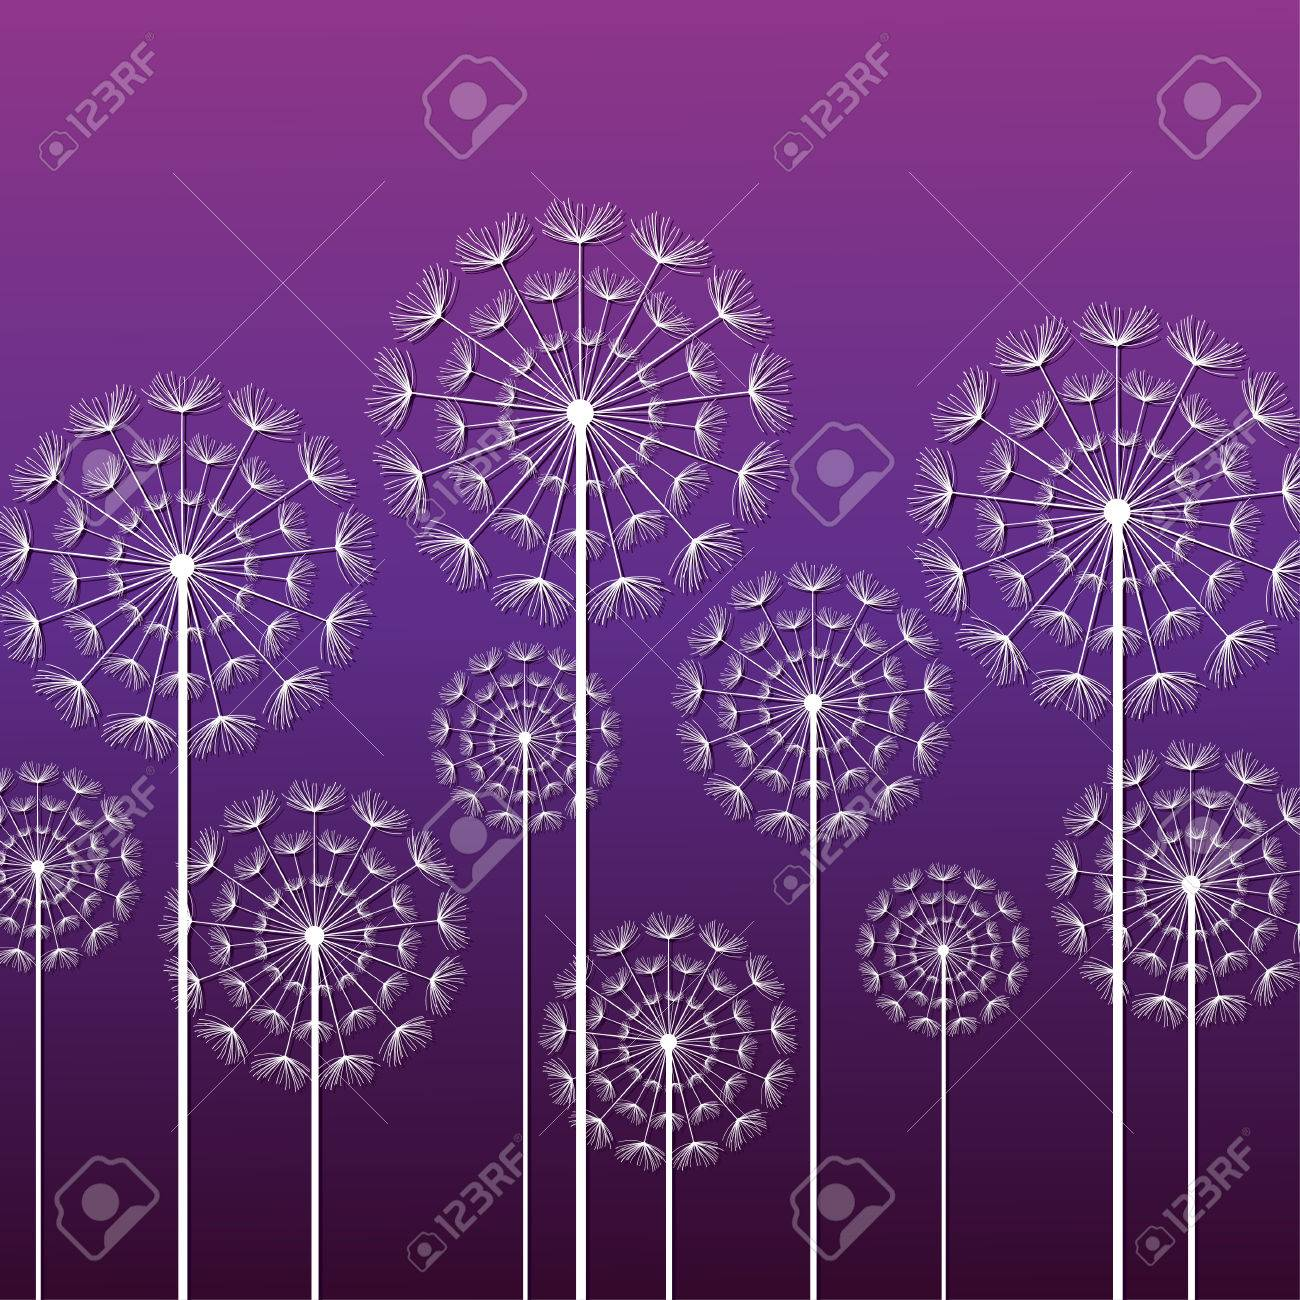 Perfect Dark Purple Ornamental Background With Stylized White Dandelions. Floral Stylish  Trendy Wallpaper With Summer Or